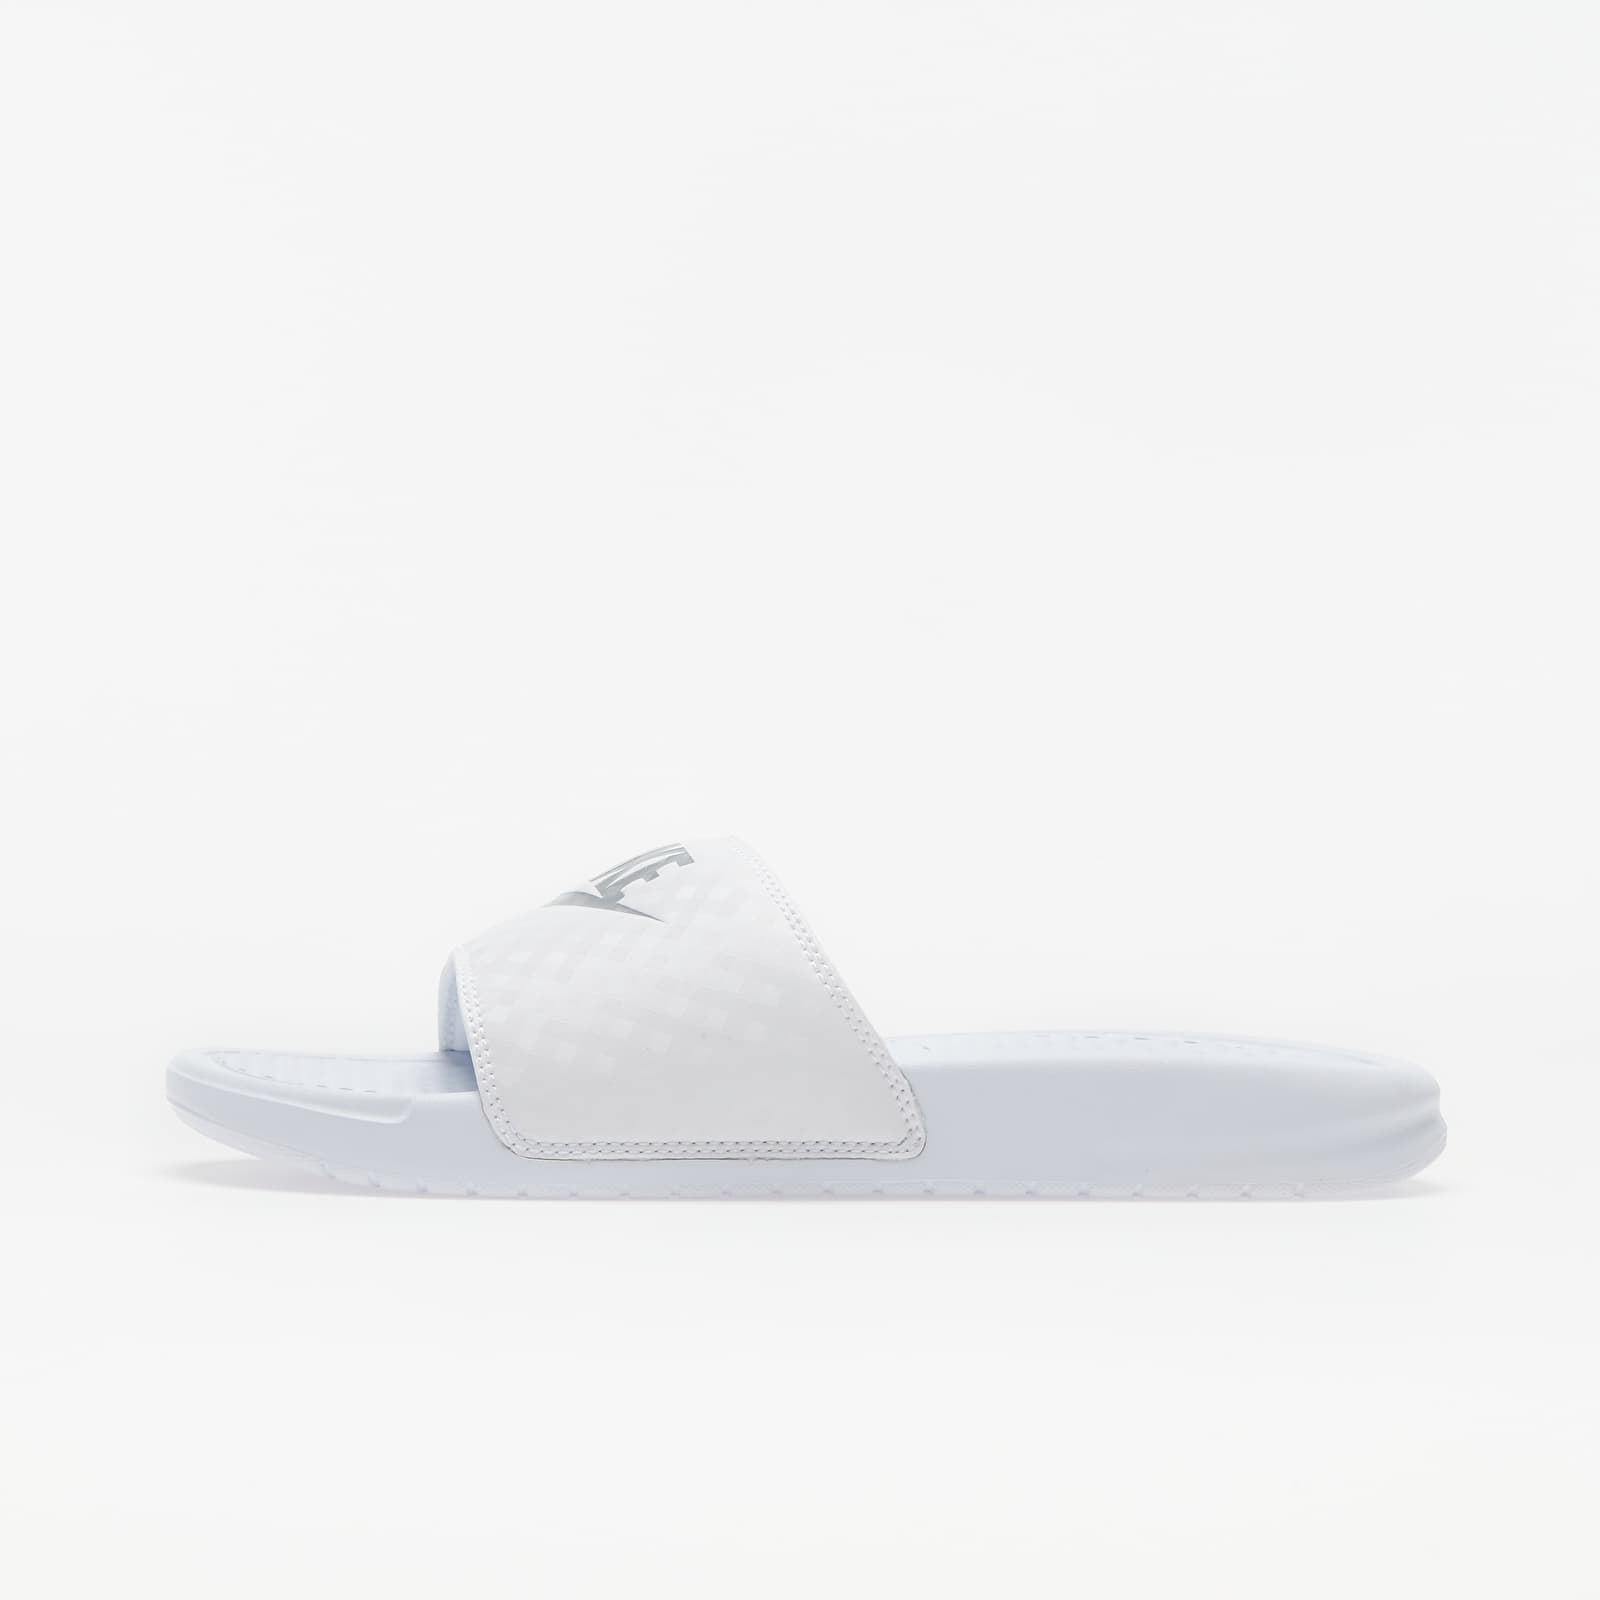 Women's shoes Nike Wmns Benassi Jdi White/ Metallic Silver